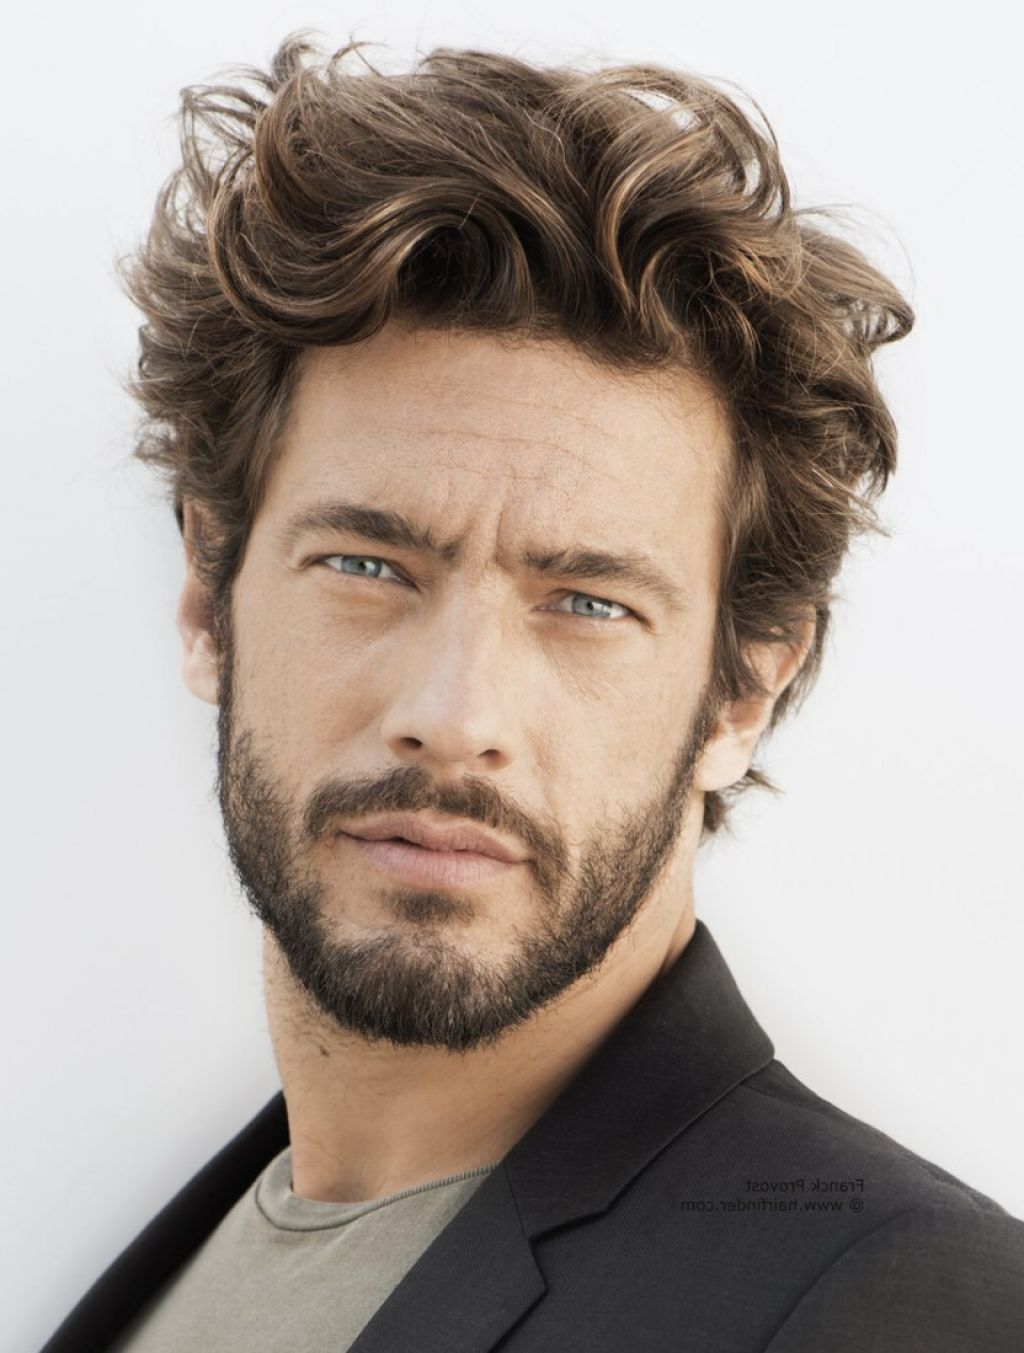 Beard Styles For Men With Curly Hair Long Hairstyles For Men